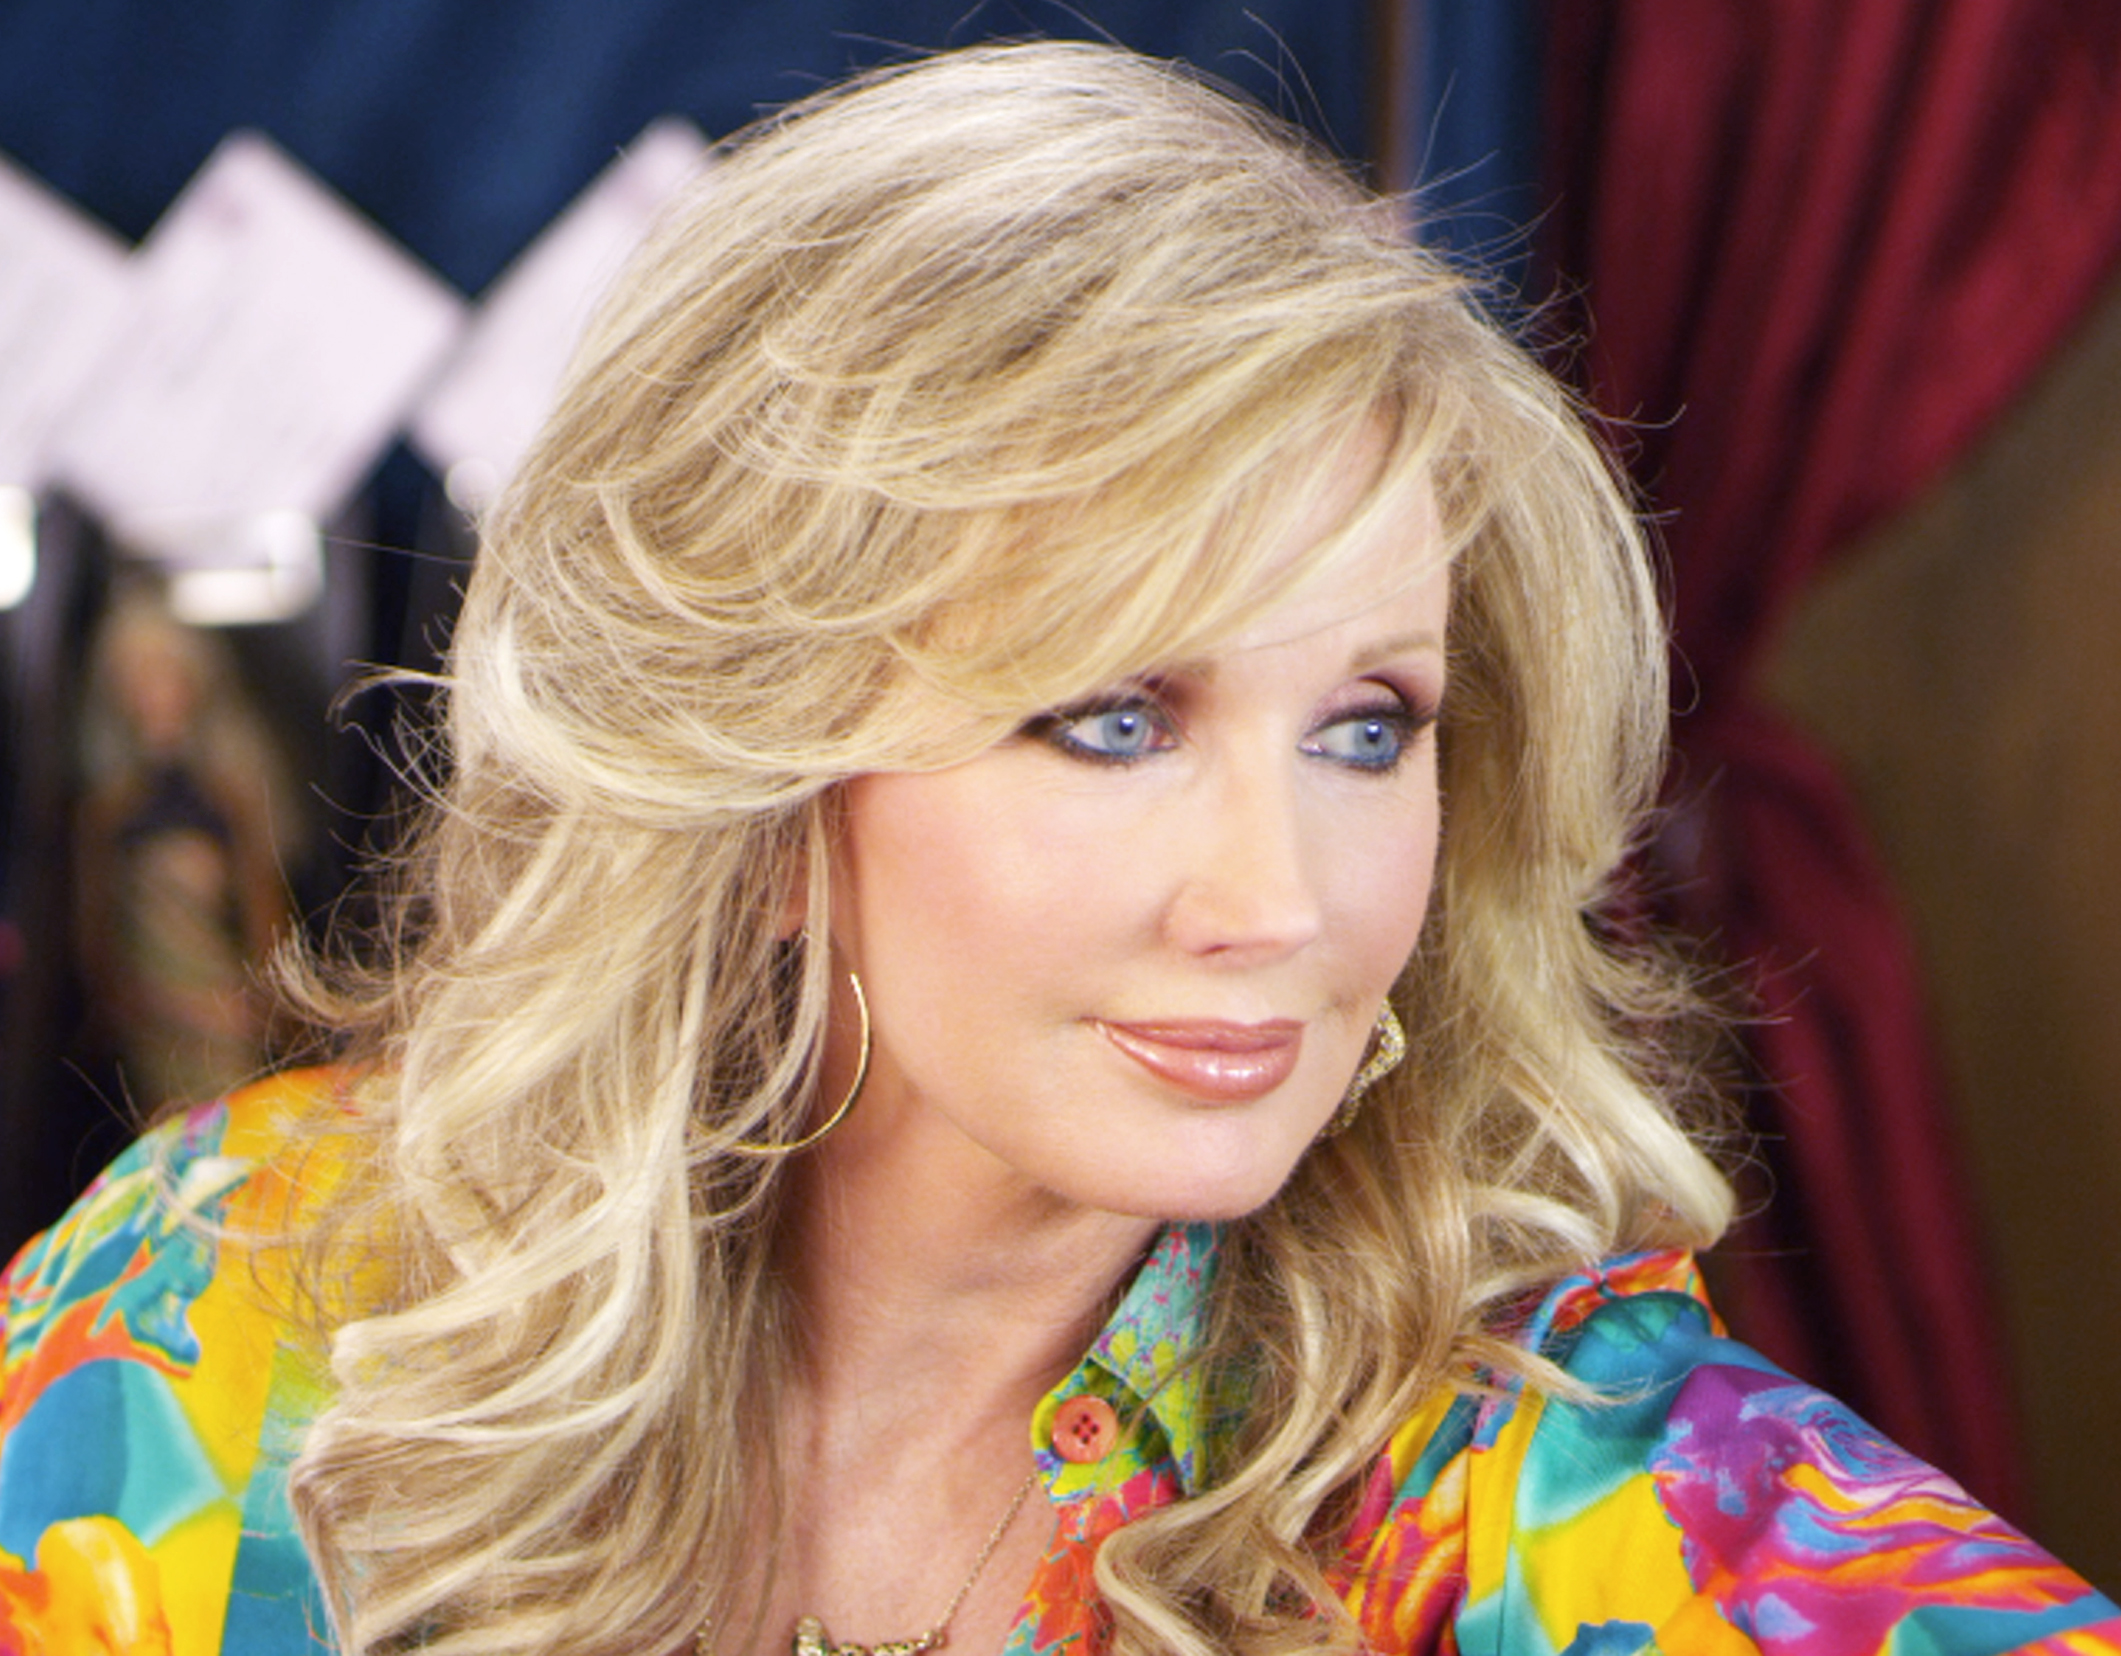 OML Exclusive - Behind The Scenes with Morgan Fairchild